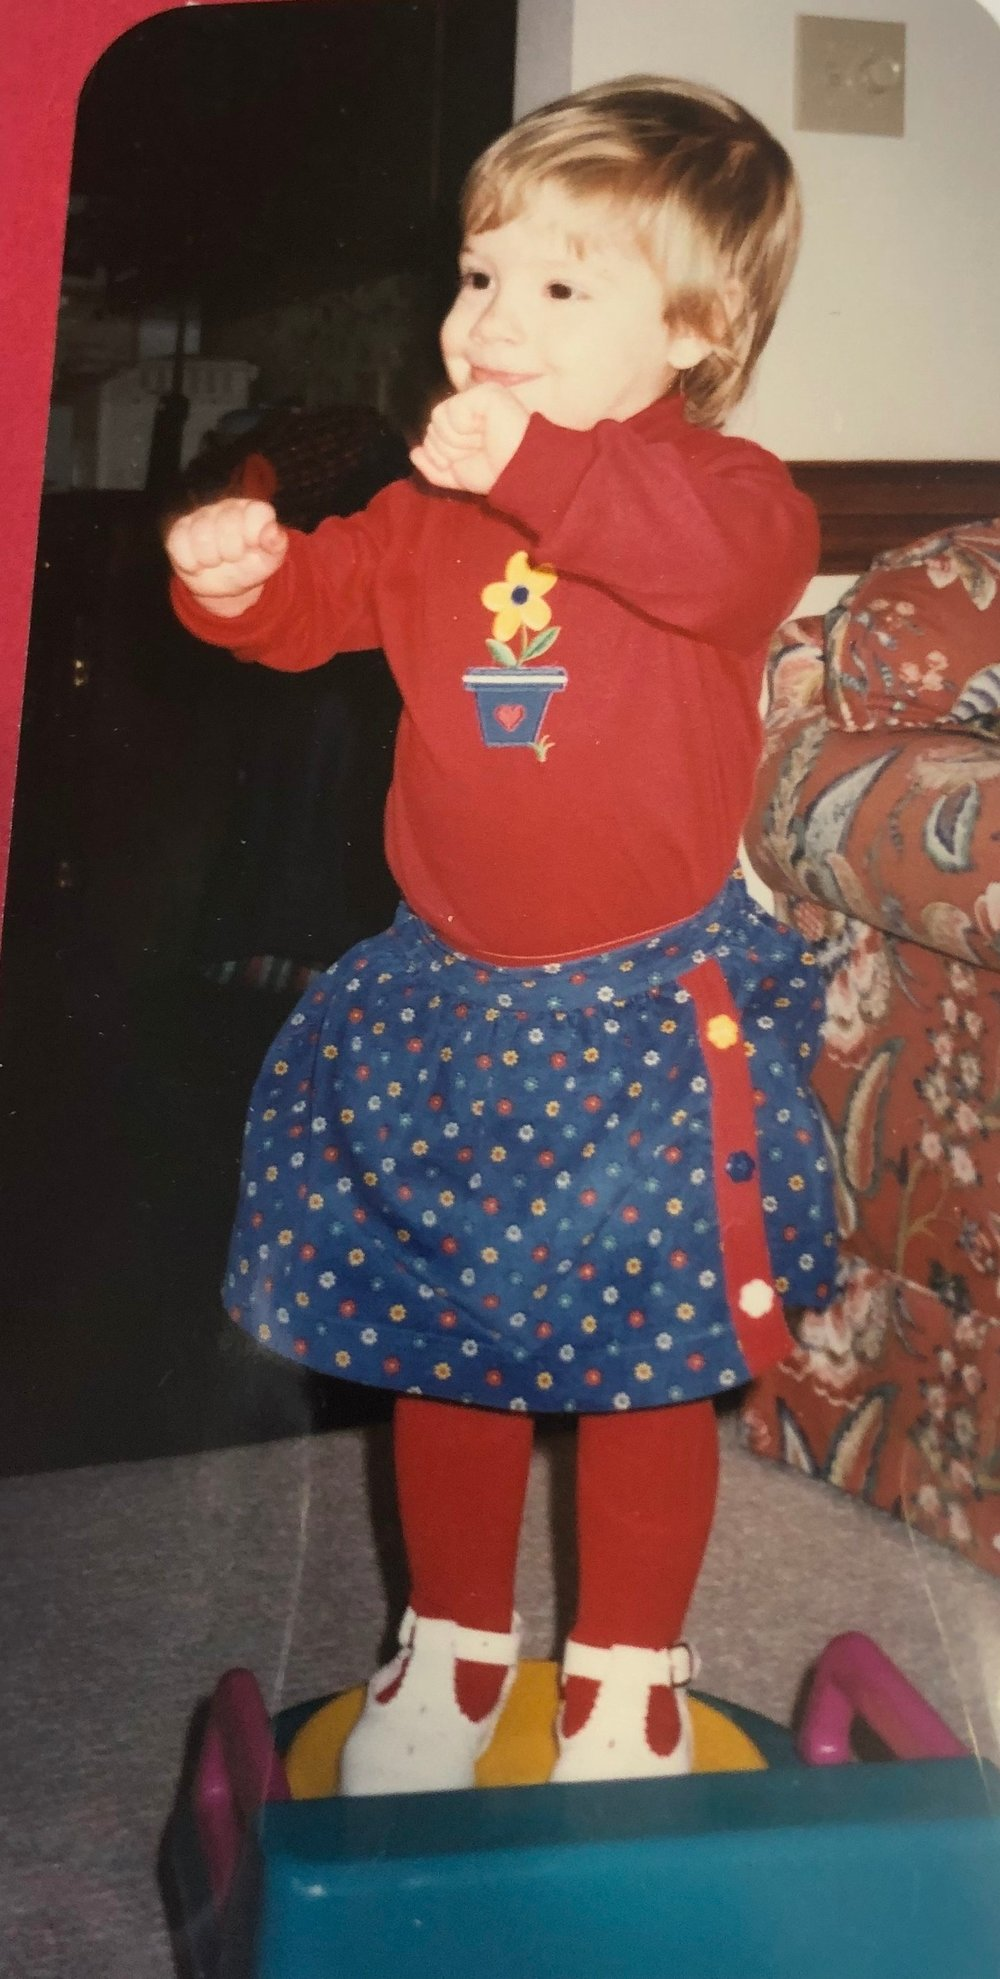 Ca. 1996, casually performing a number off the Beauty & The Beast soundtrack for my parents from the comfort of my baby potty. Crushed it! (Also, that couch was ugly. Hey, the 90s were tough.)